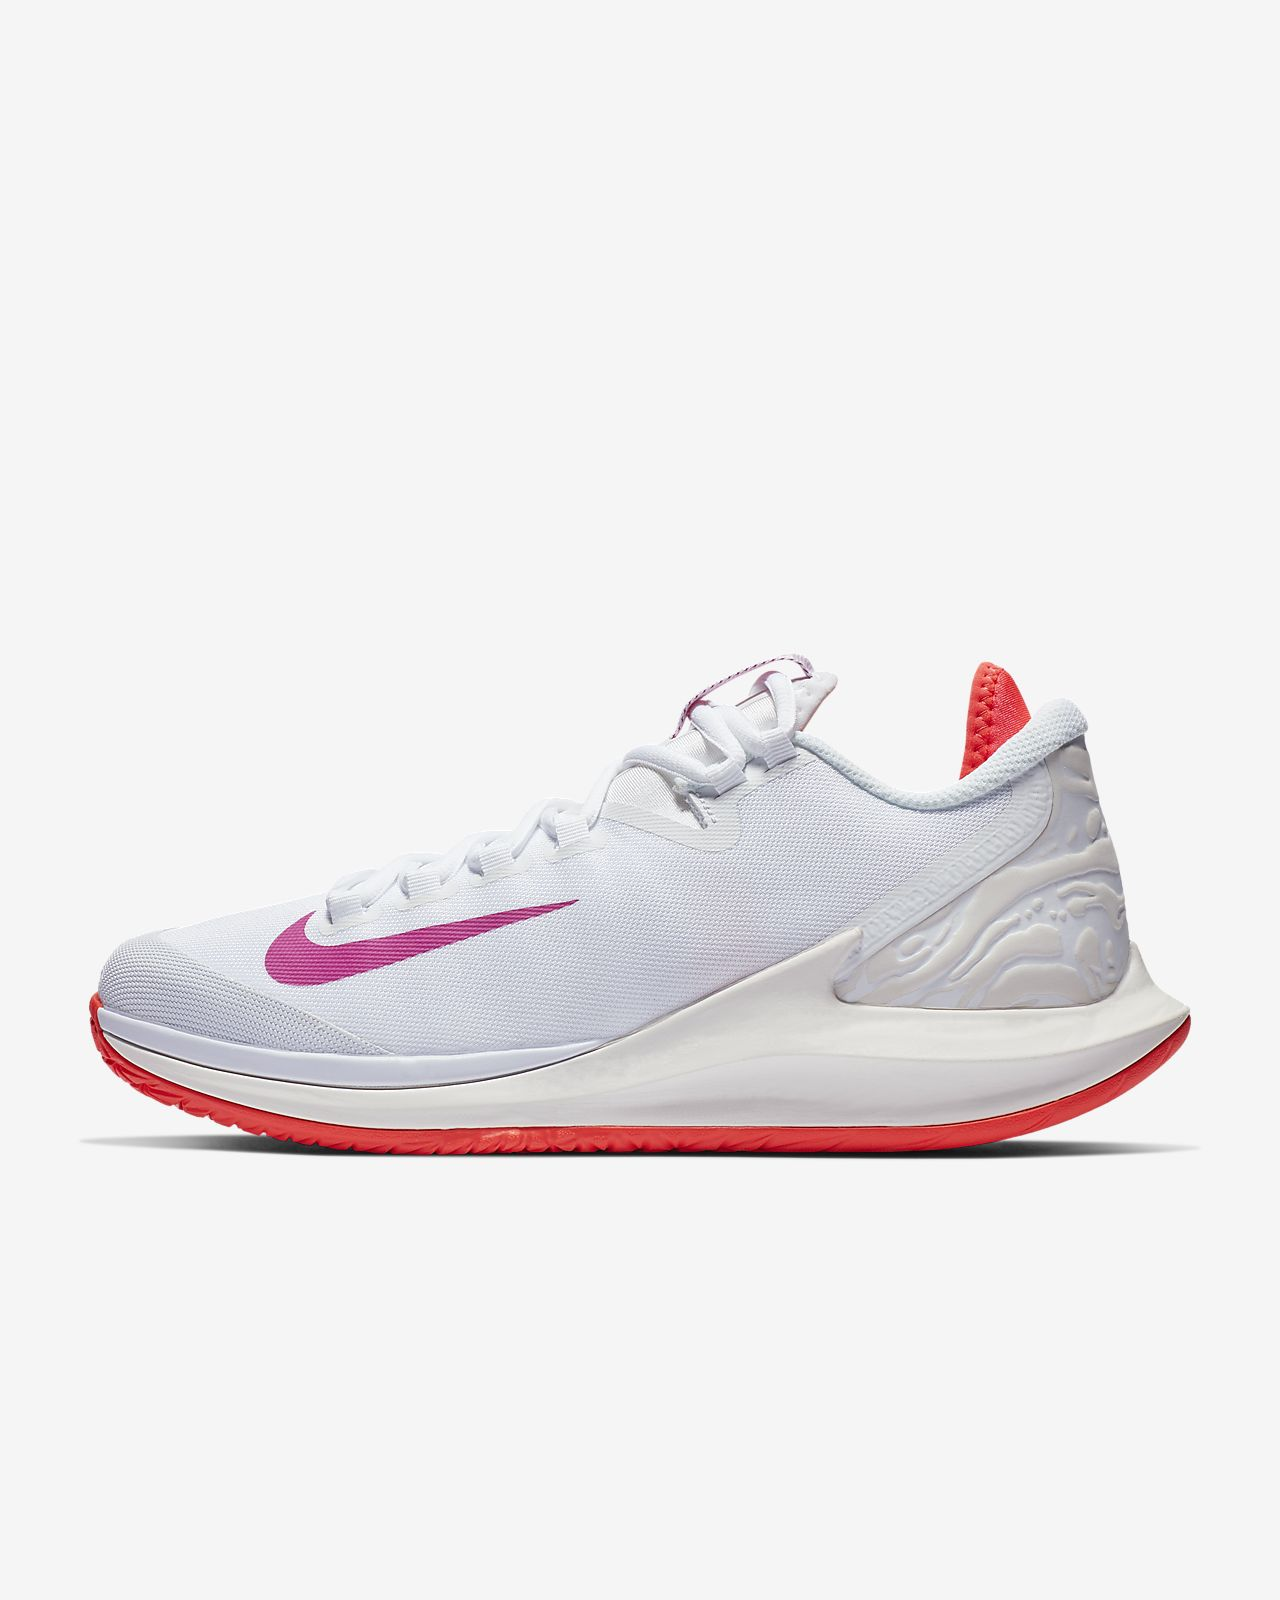 Chaussure nike pour tennis